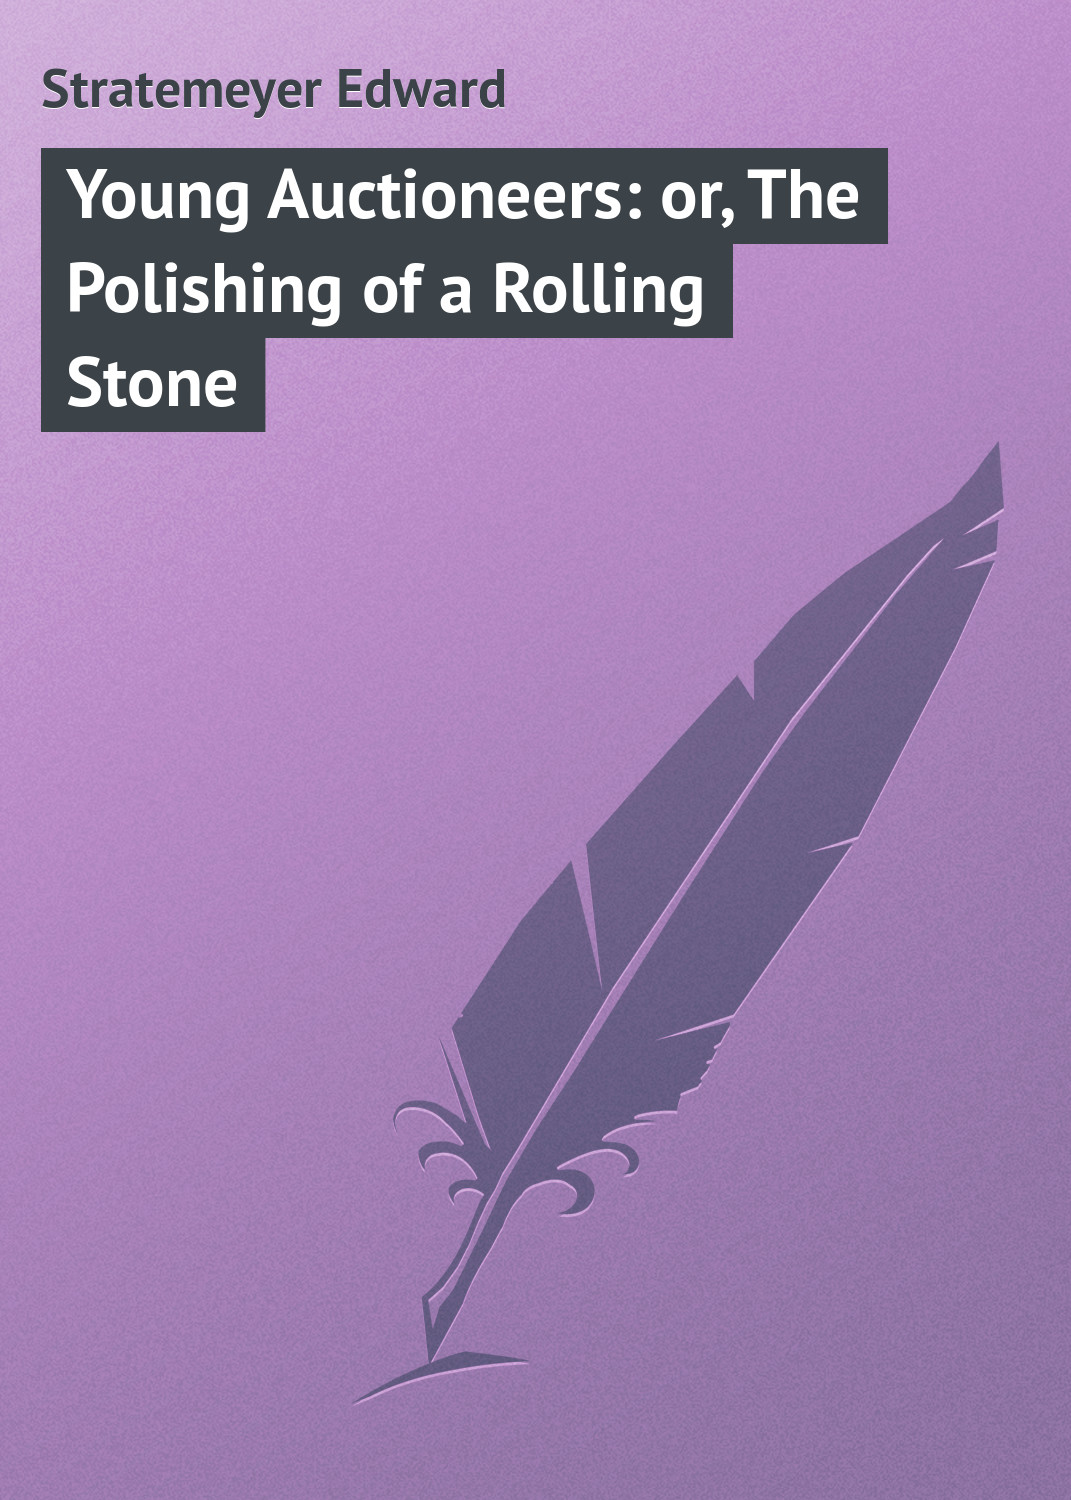 Stratemeyer Edward Young Auctioneers: or, The Polishing of a Rolling Stone